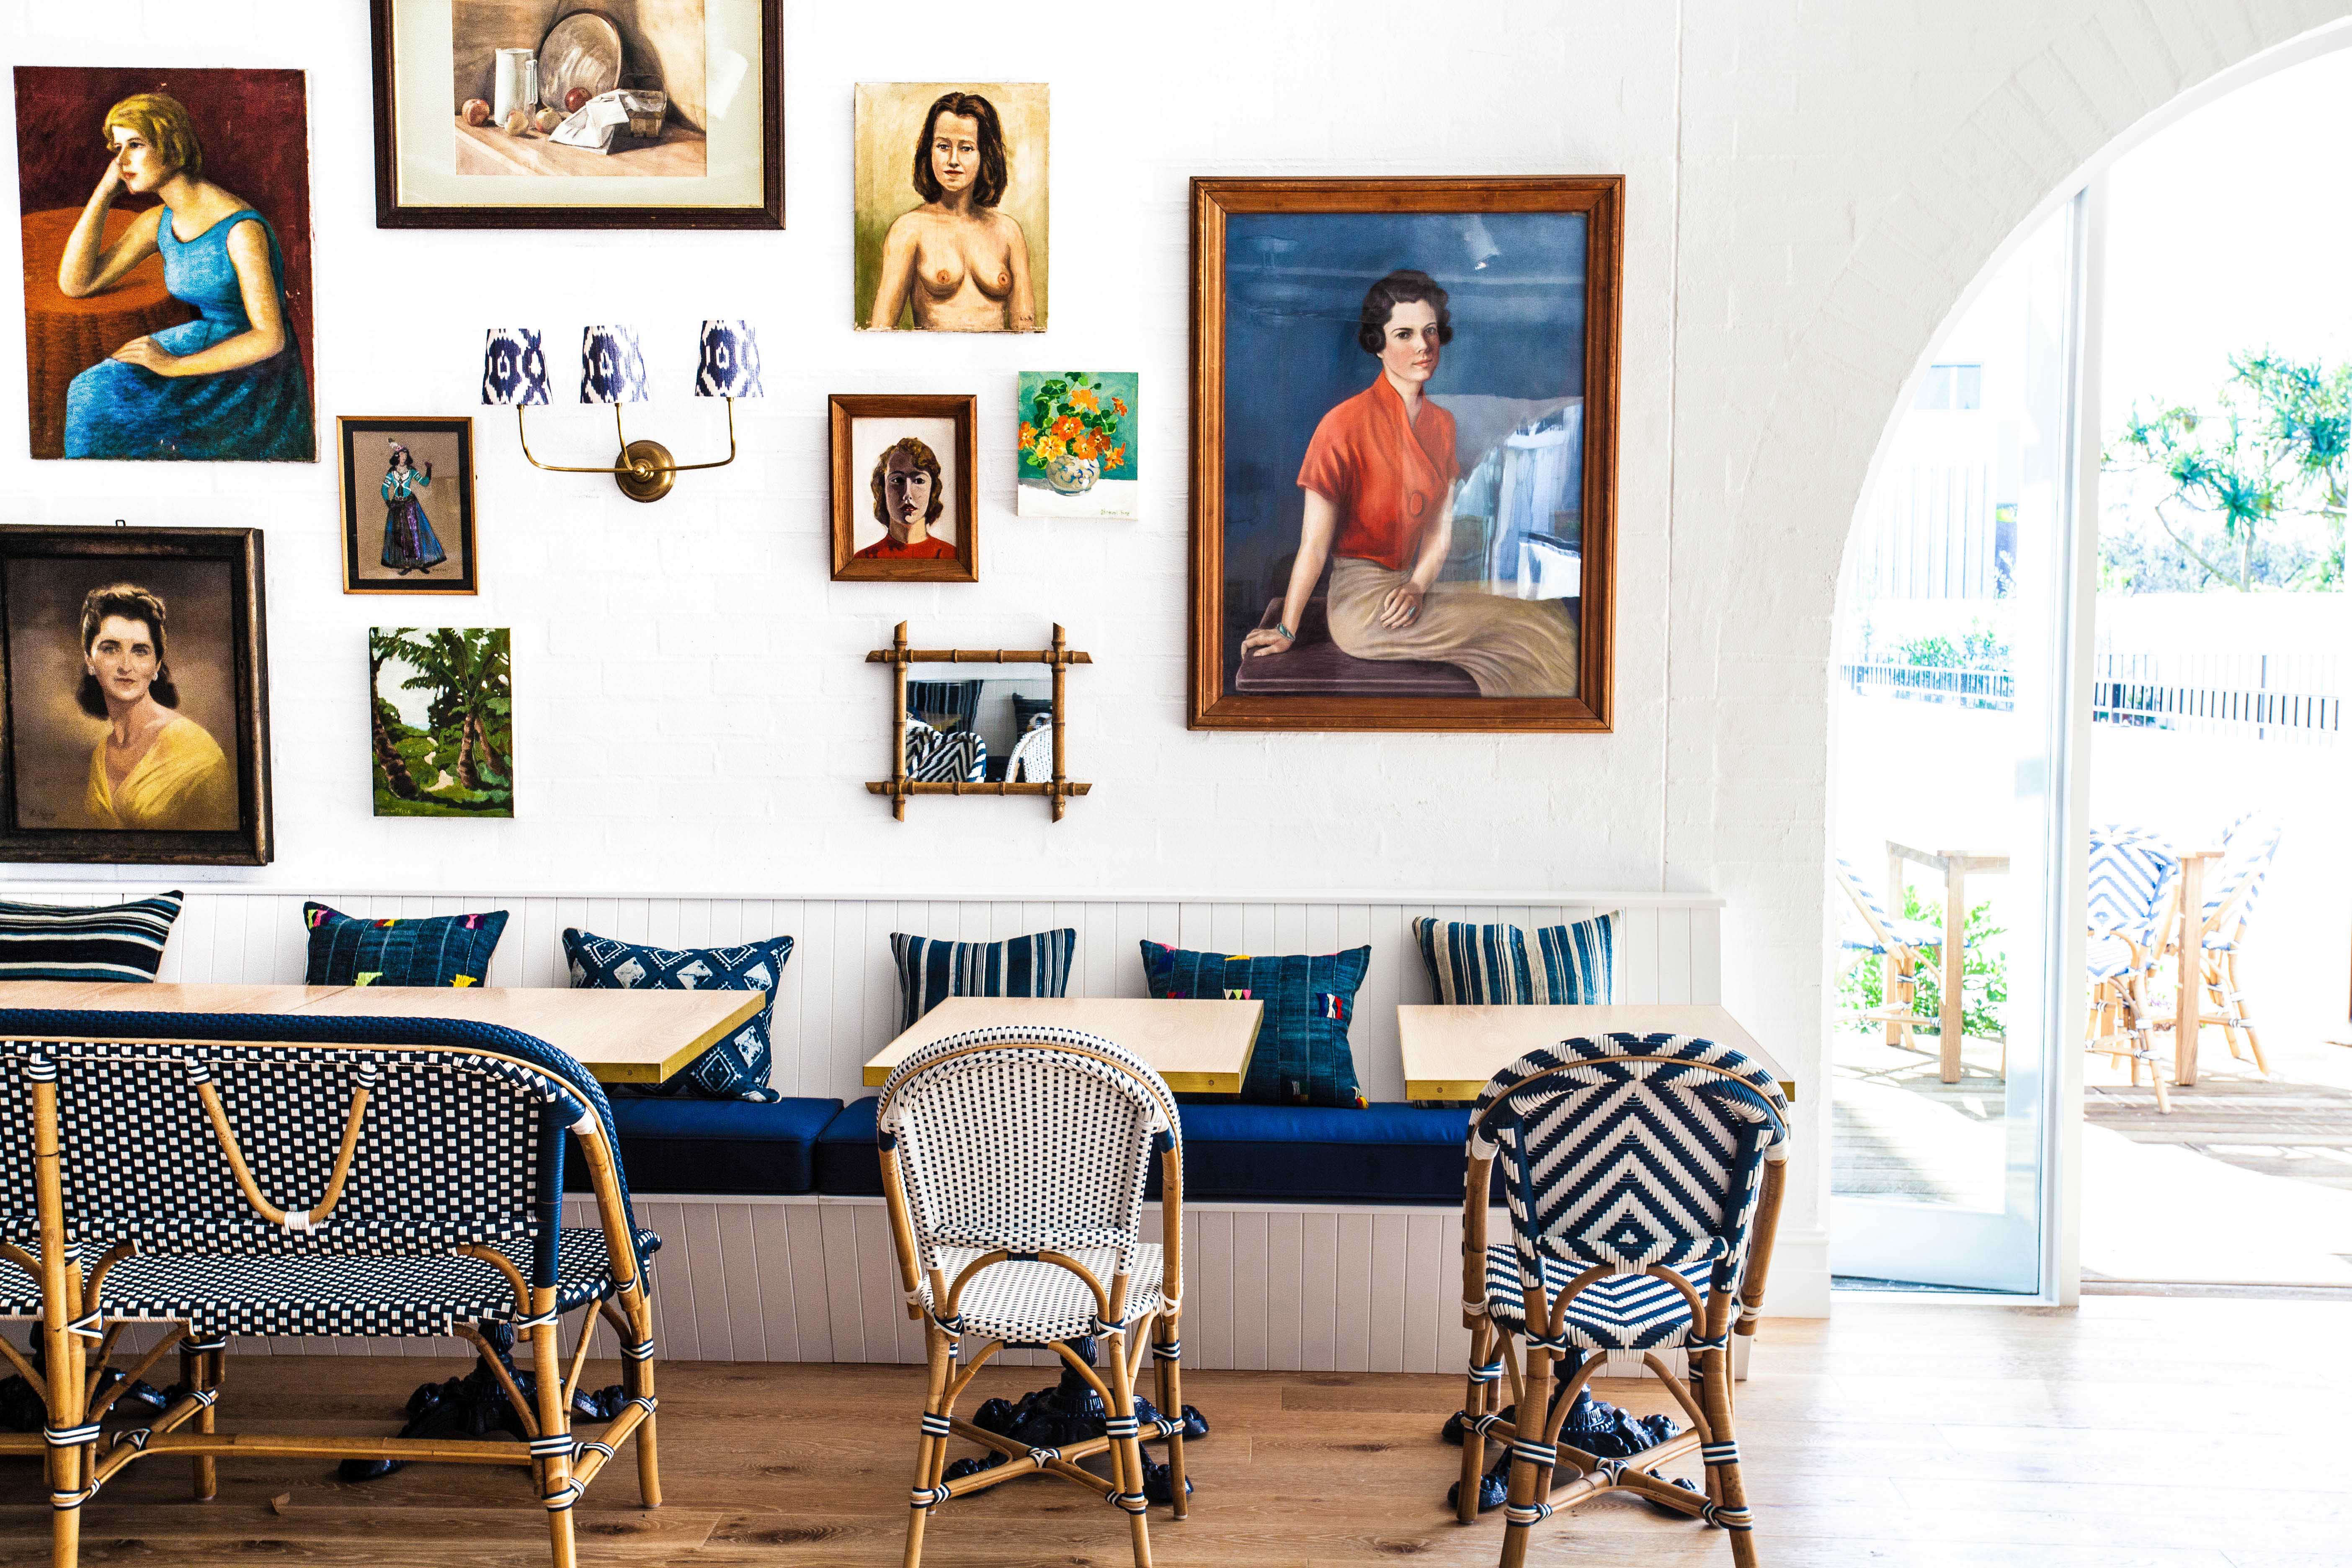 Above  Kerridge s airy interiors then received the Anna Spiro treatment   Halycon s quirky patchwork of art and antiques came together easily  As an  offshoot. Halcyon House  Playing with Pattern  Aussie Edition   Remodelista